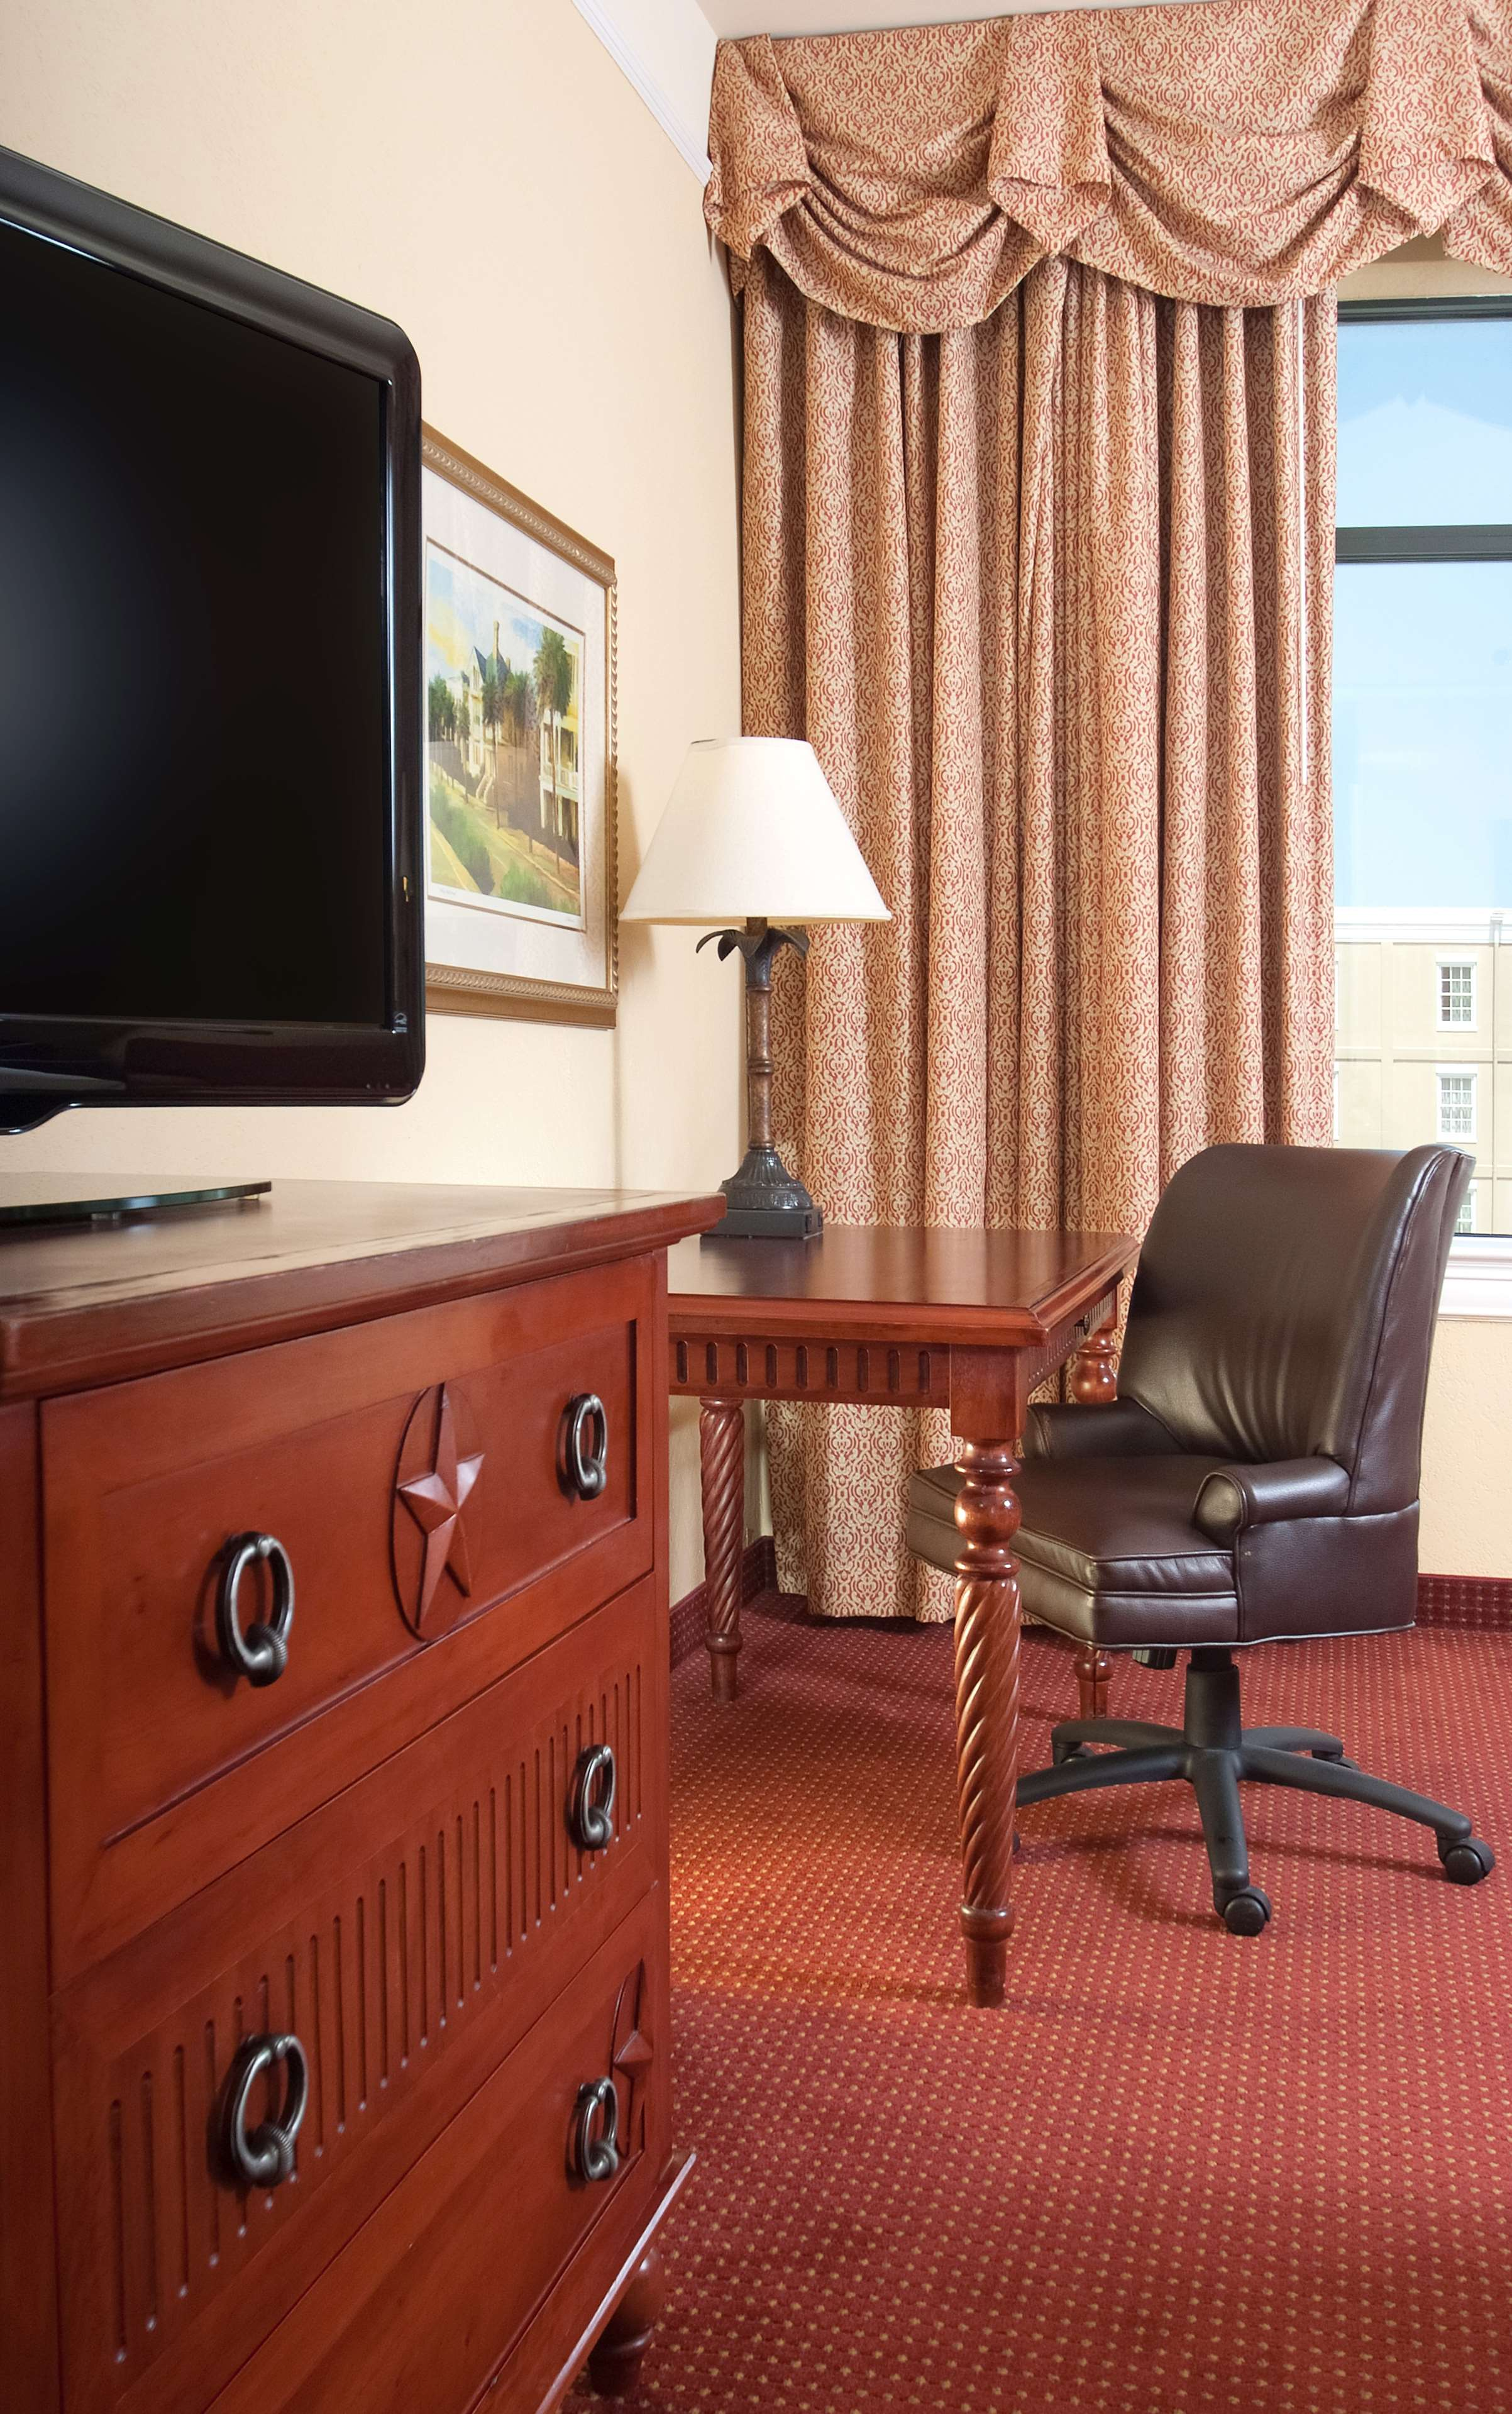 DoubleTree by Hilton Hotel & Suites Charleston - Historic District image 14